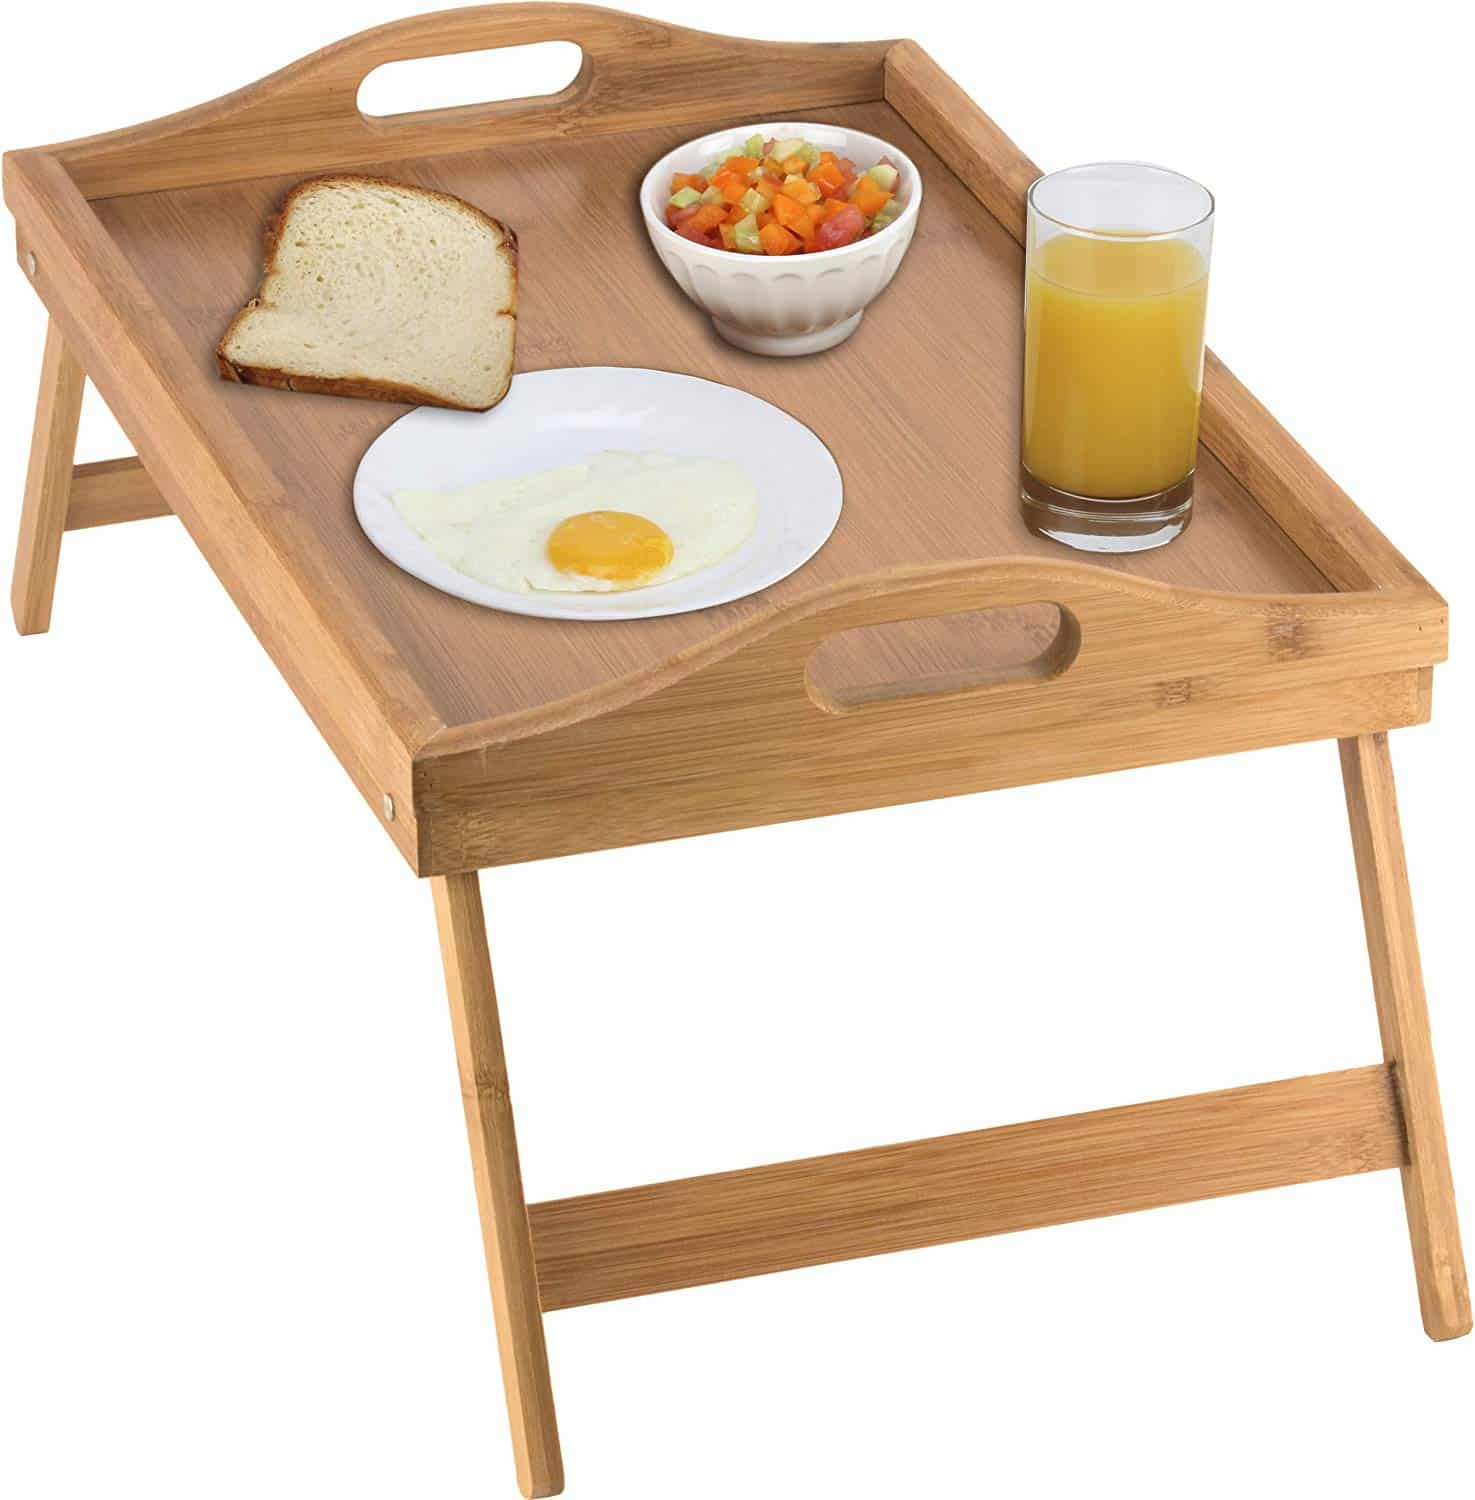 Home-it Bed Tray